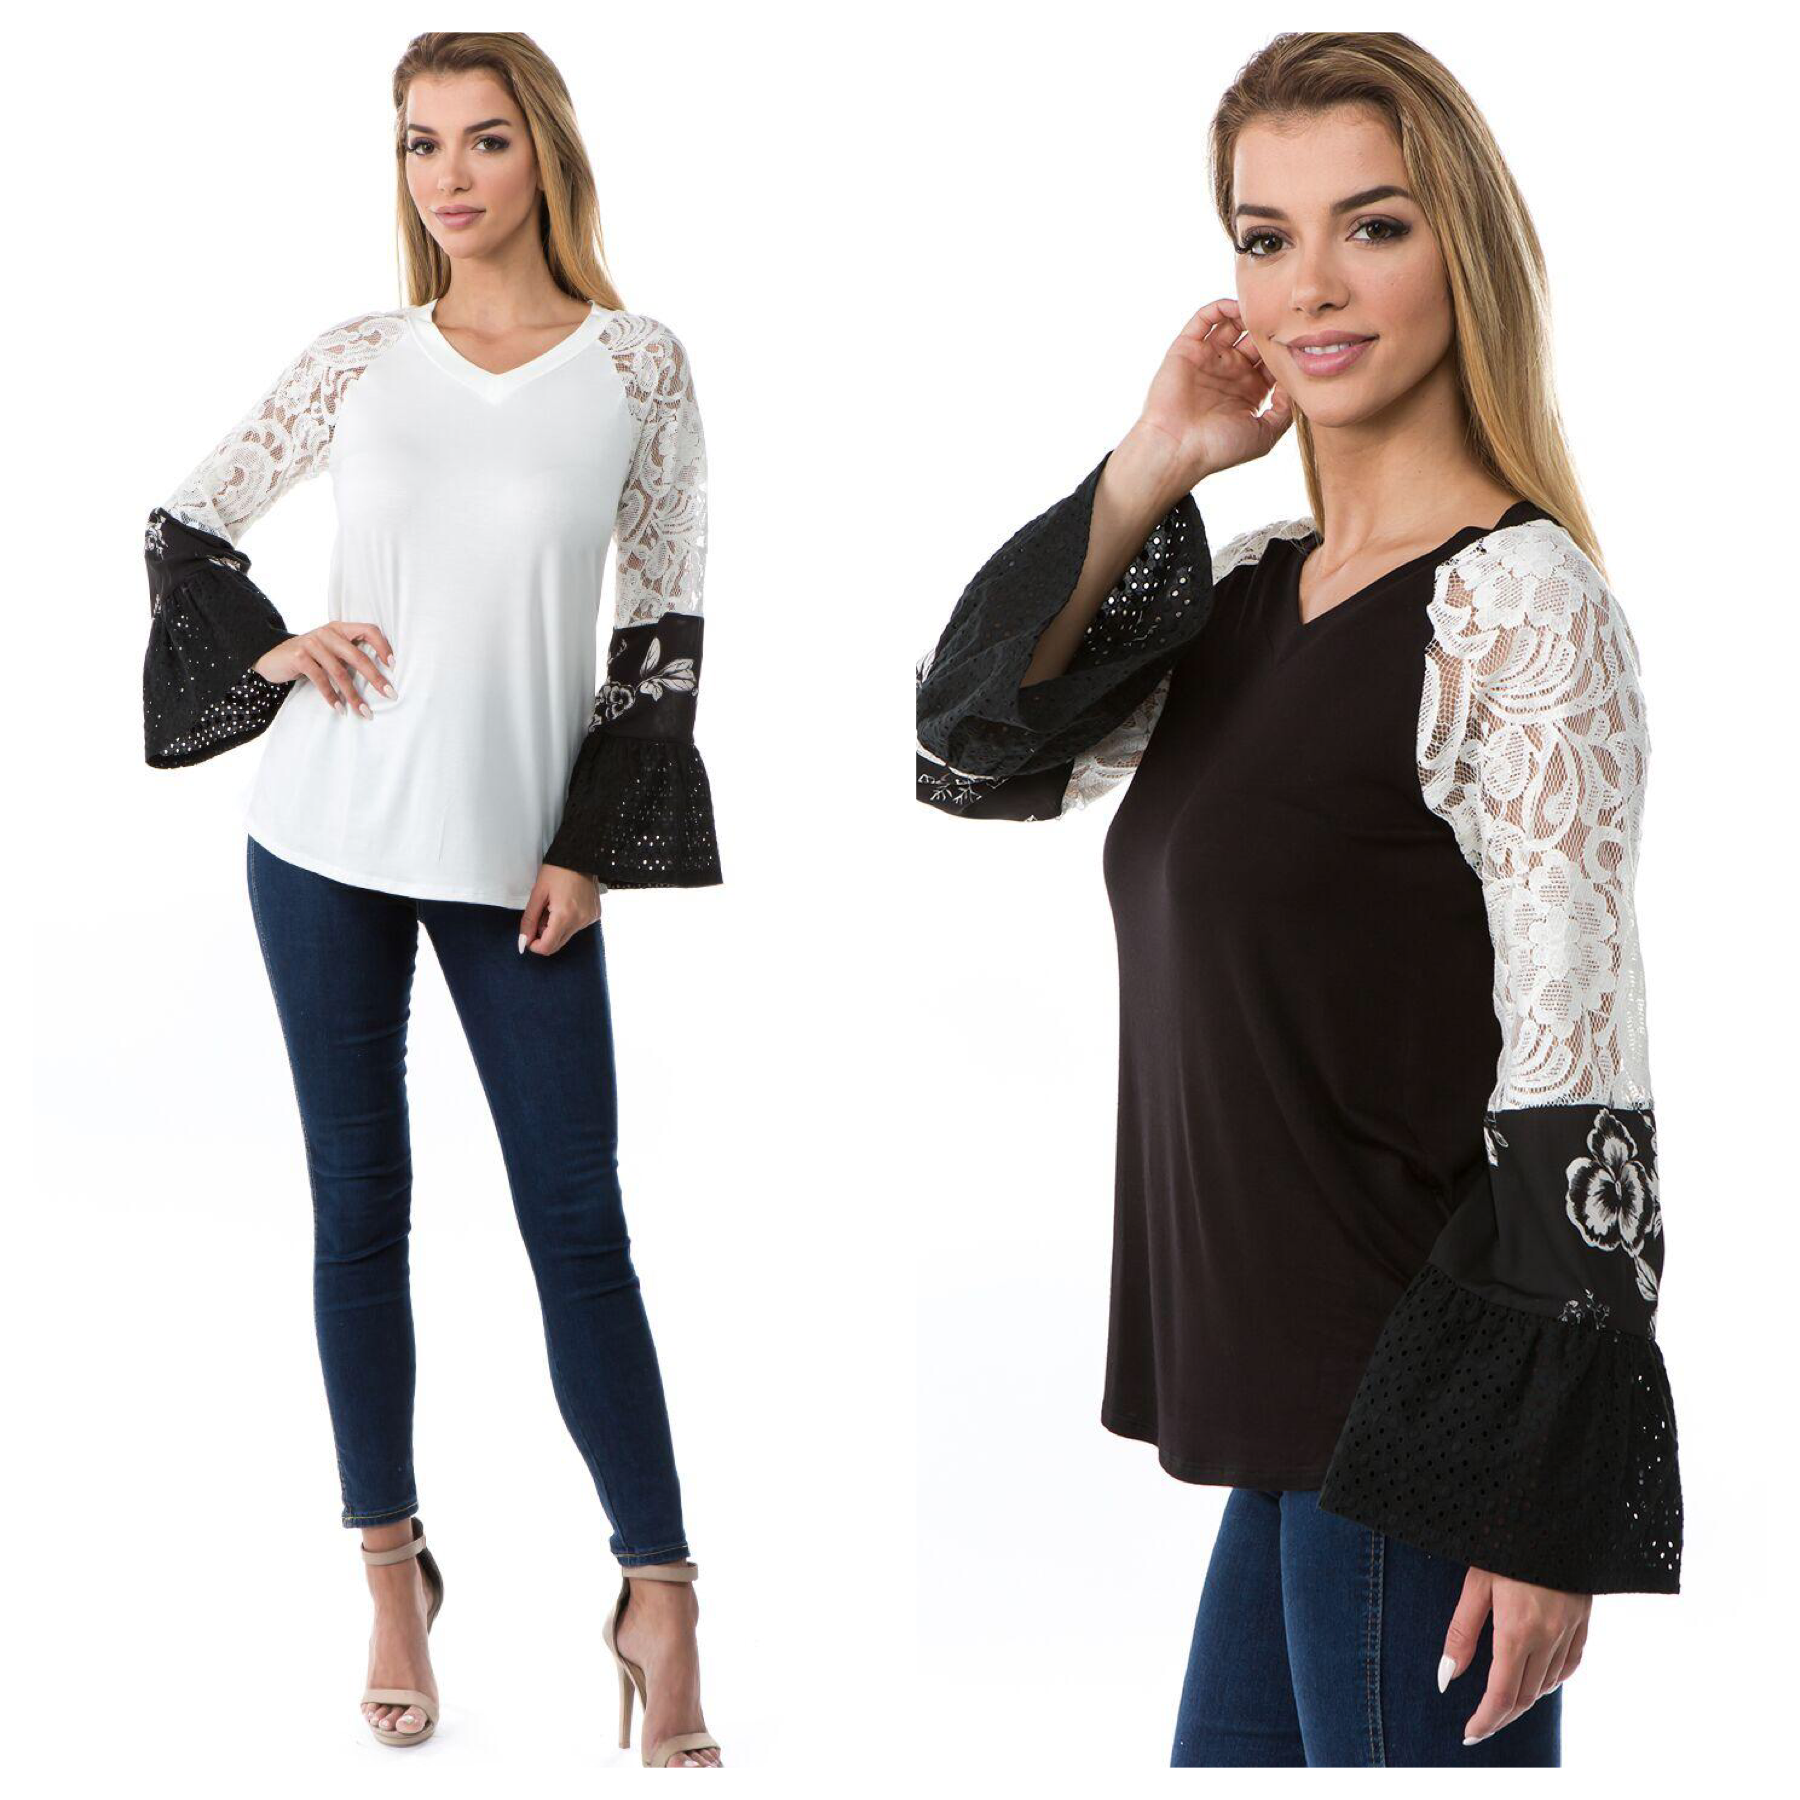 Mixed Fabric Ruffle Sleeve Top